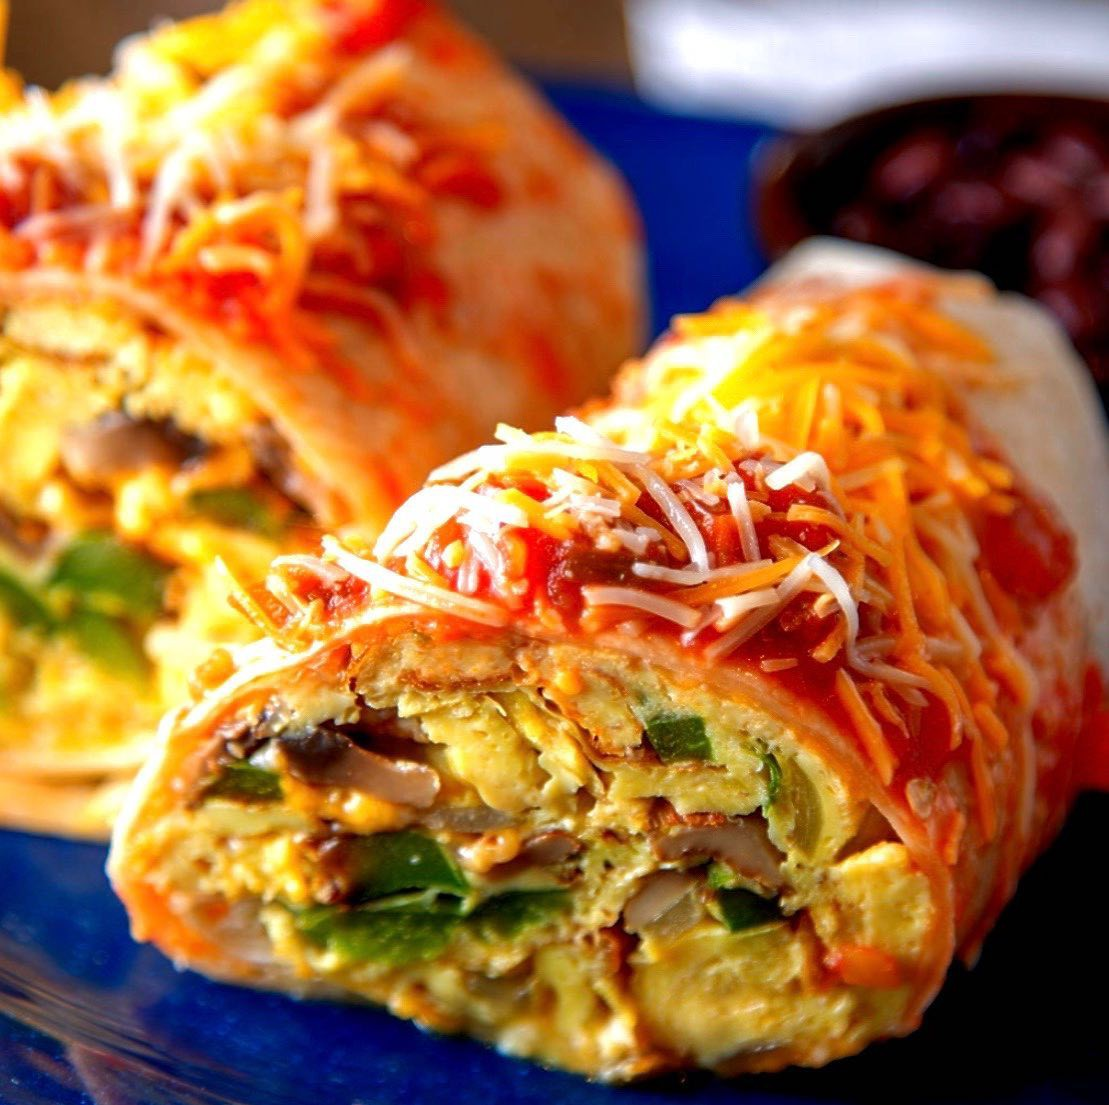 Breakfast burrito at Persy's Place